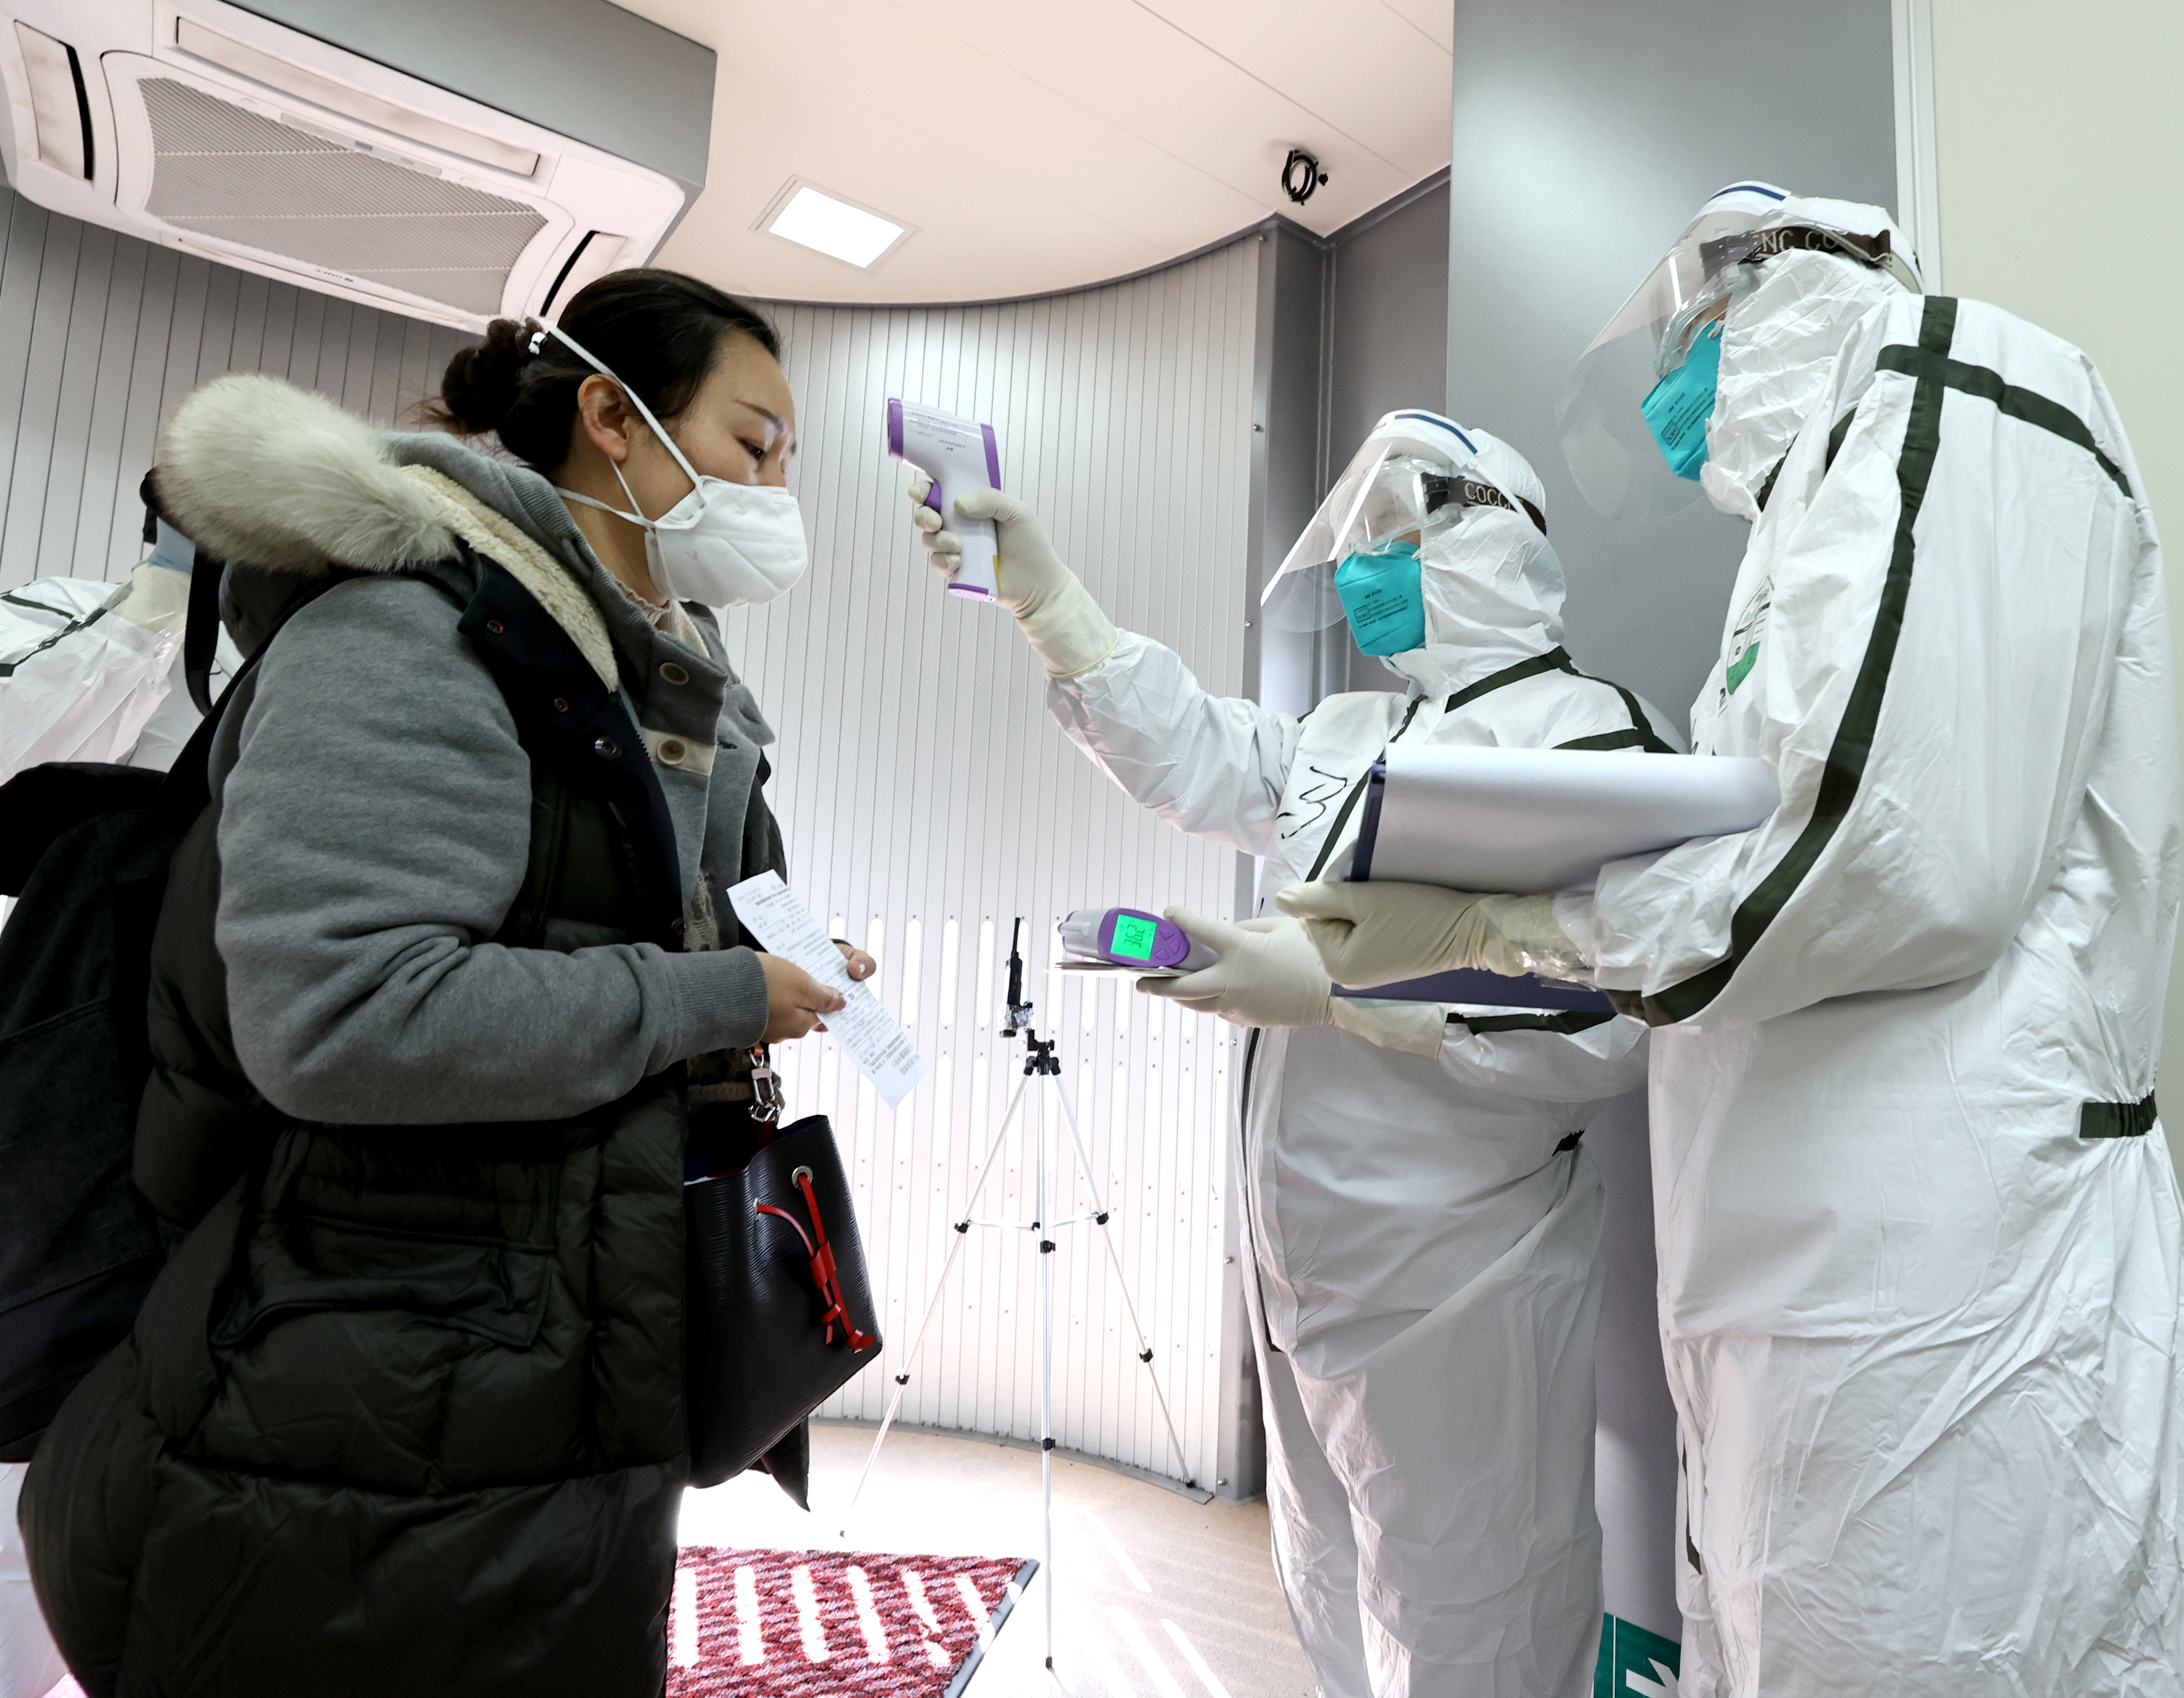 40 new confirmed cases of coronavirus infection reported on Chinese mainland